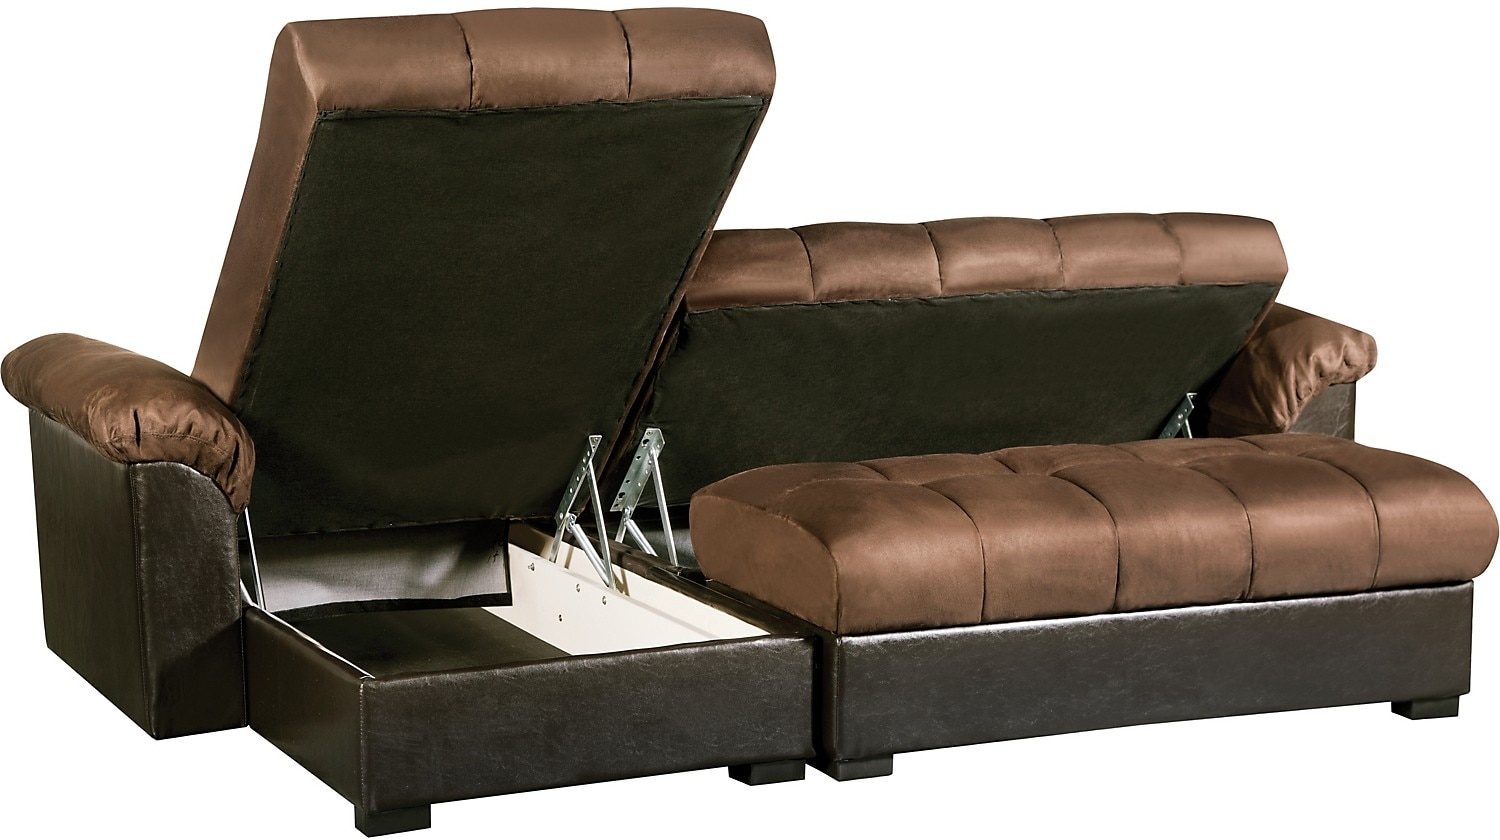 Billie sleeper sofa chaise with storage sofa menzilperde net for Andrea 2 piece sleeper chaise